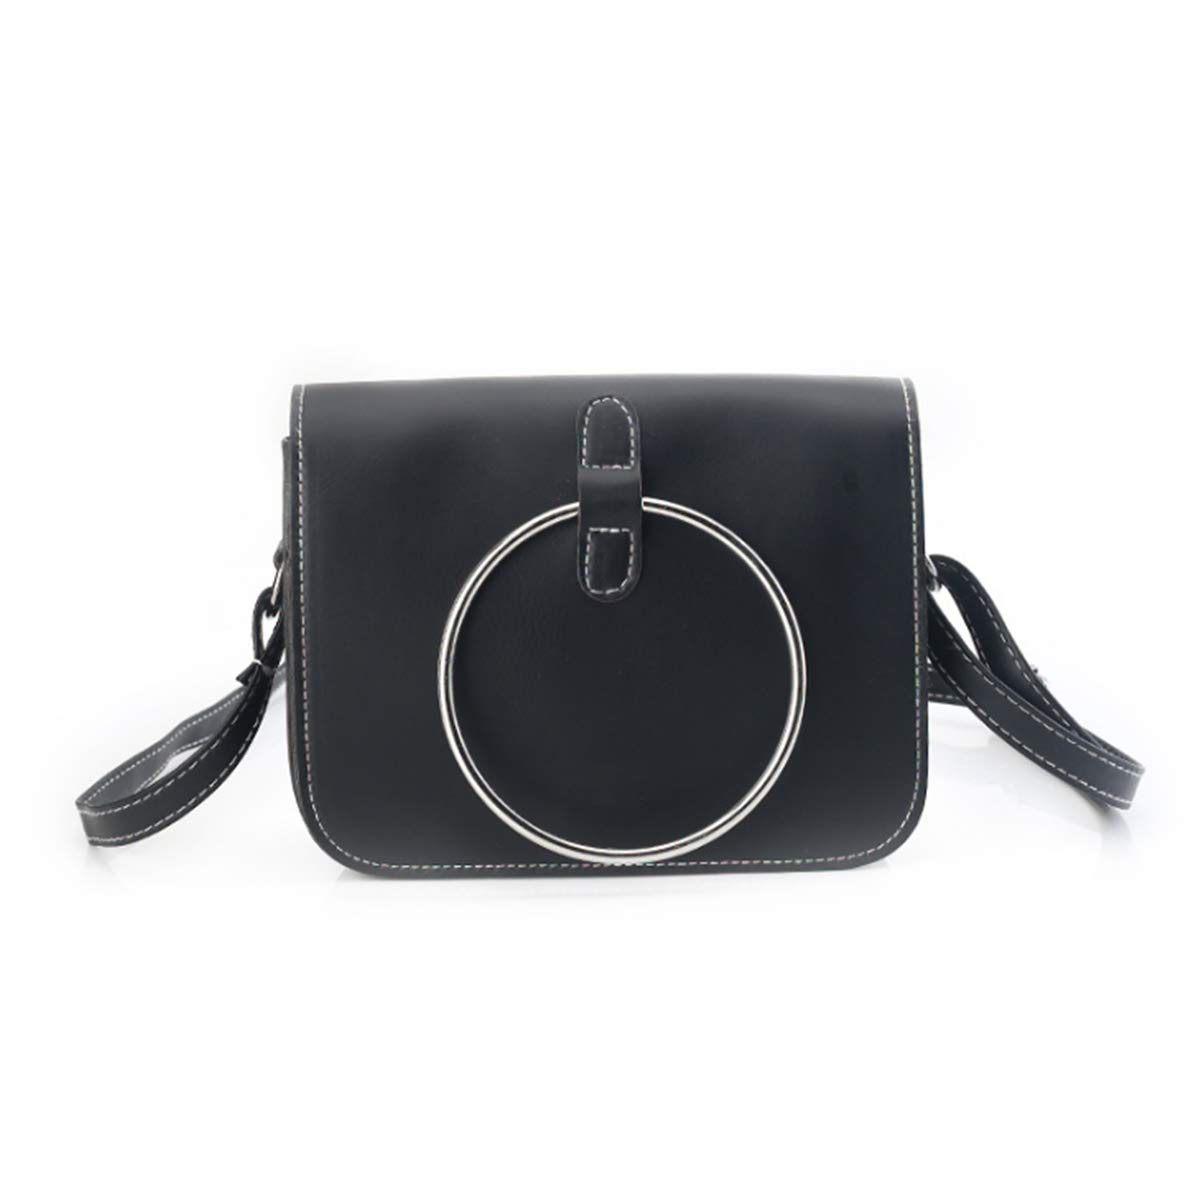 130958738af5 Satchels - 115 - Blowout Sale! Save up to 54% | Strabismus Minute